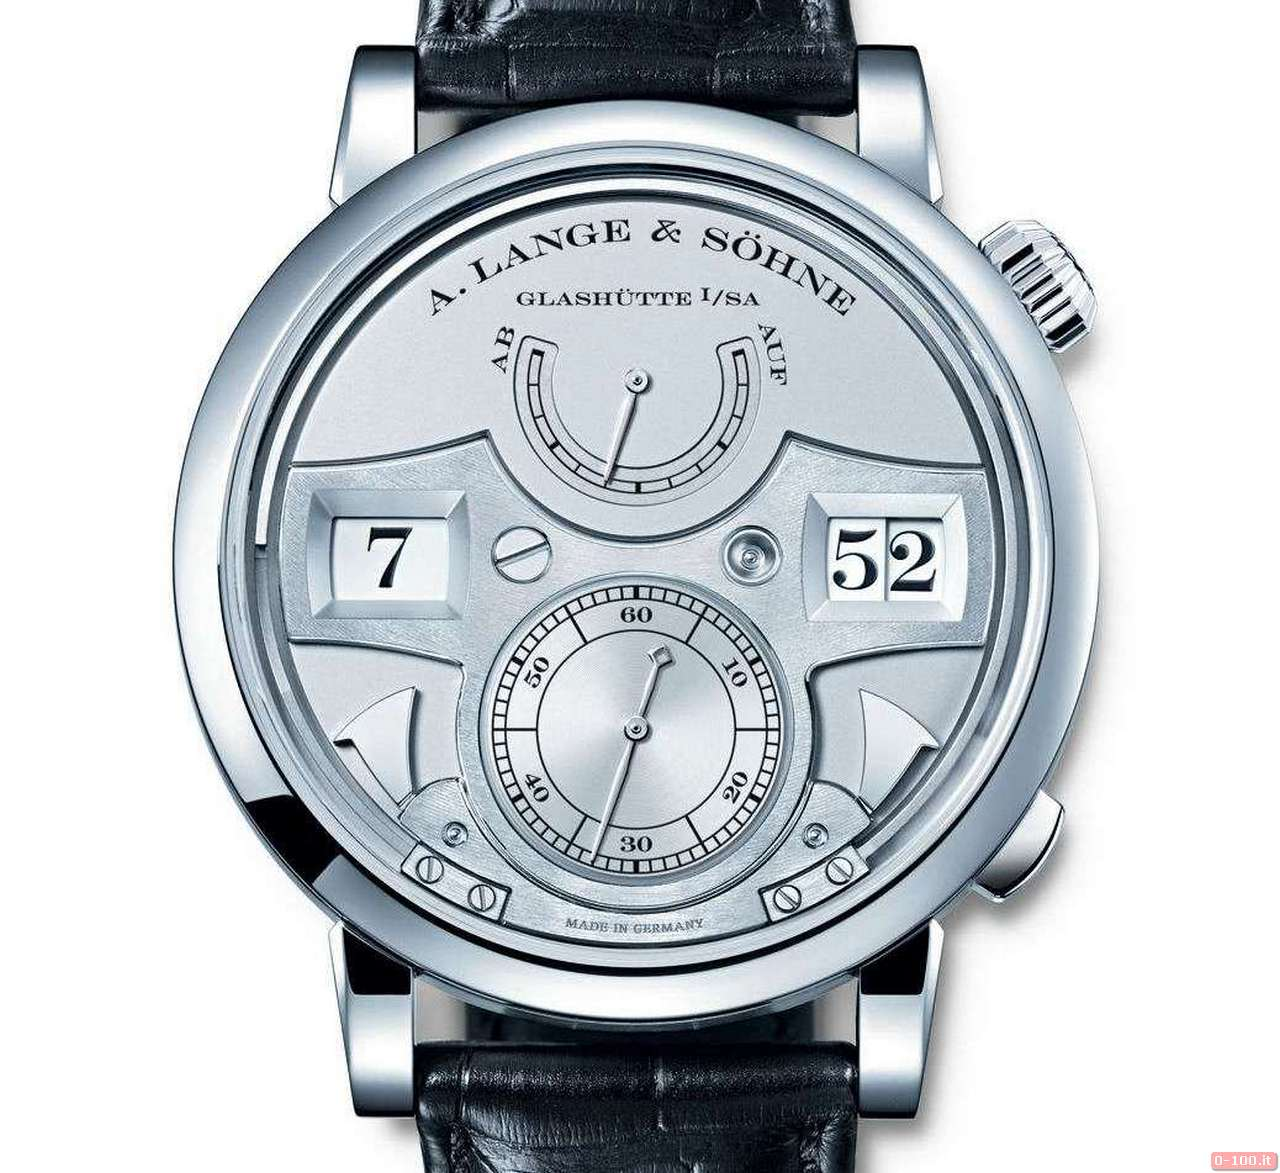 sihh-2014-lange-sohne-lange-zeitwerk-striking-time-prezzo-price_0-1006